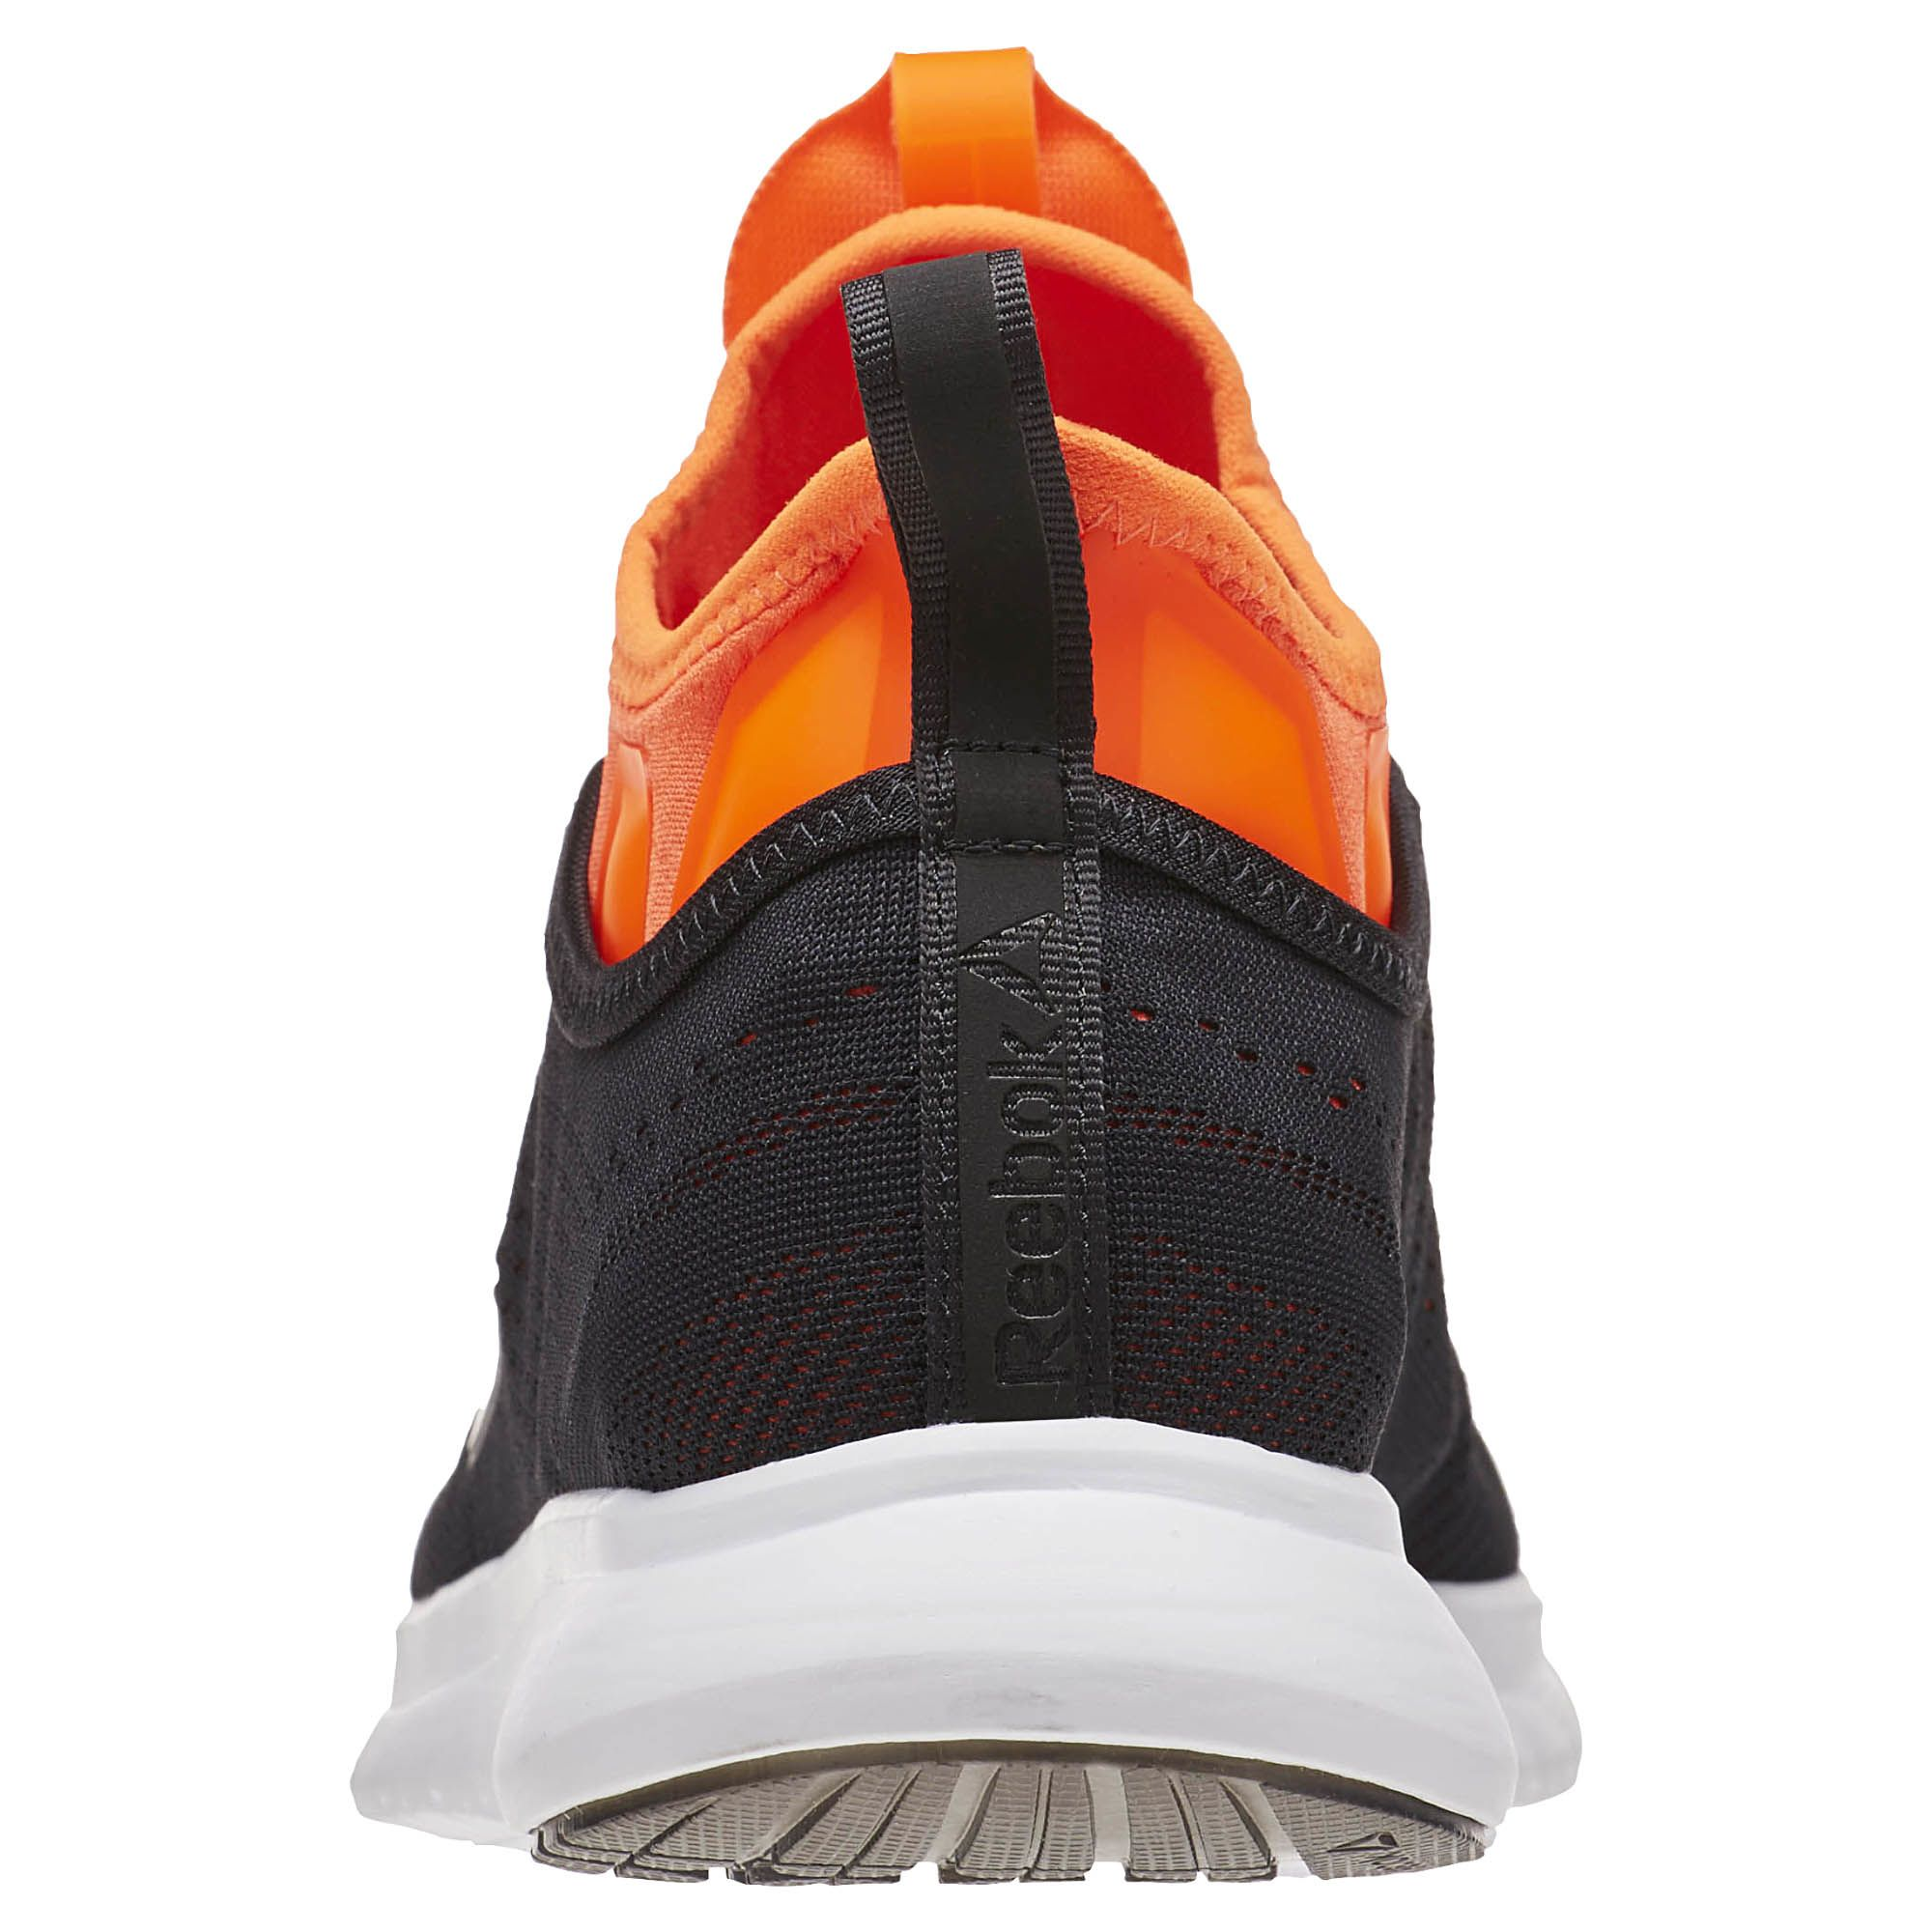 Running Shoes With Pump